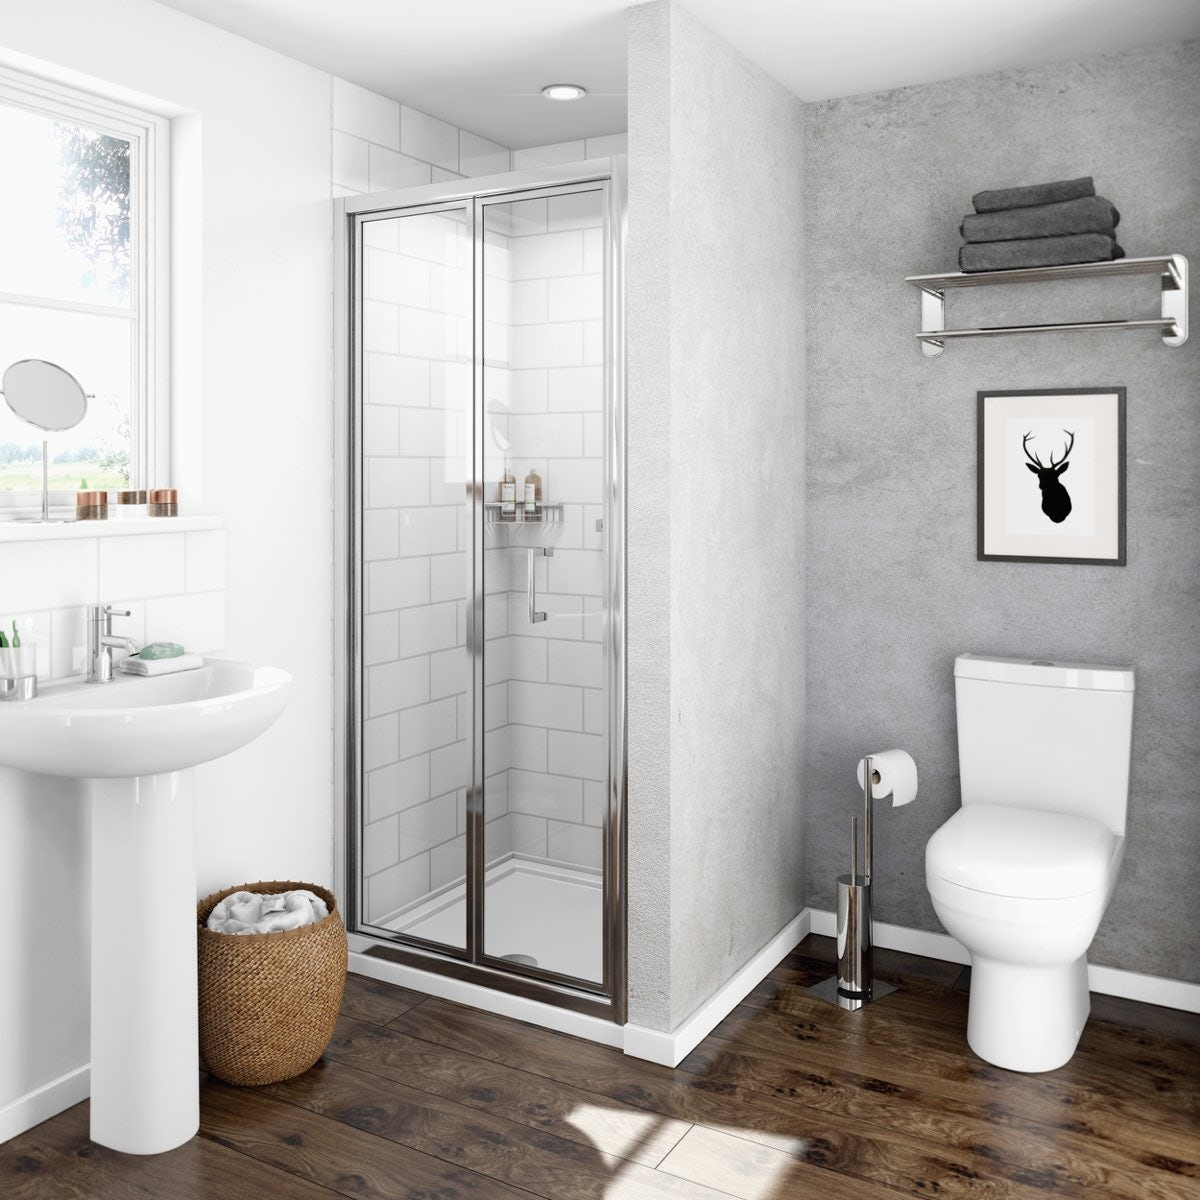 Clarity 4mm bifold shower door 700mm